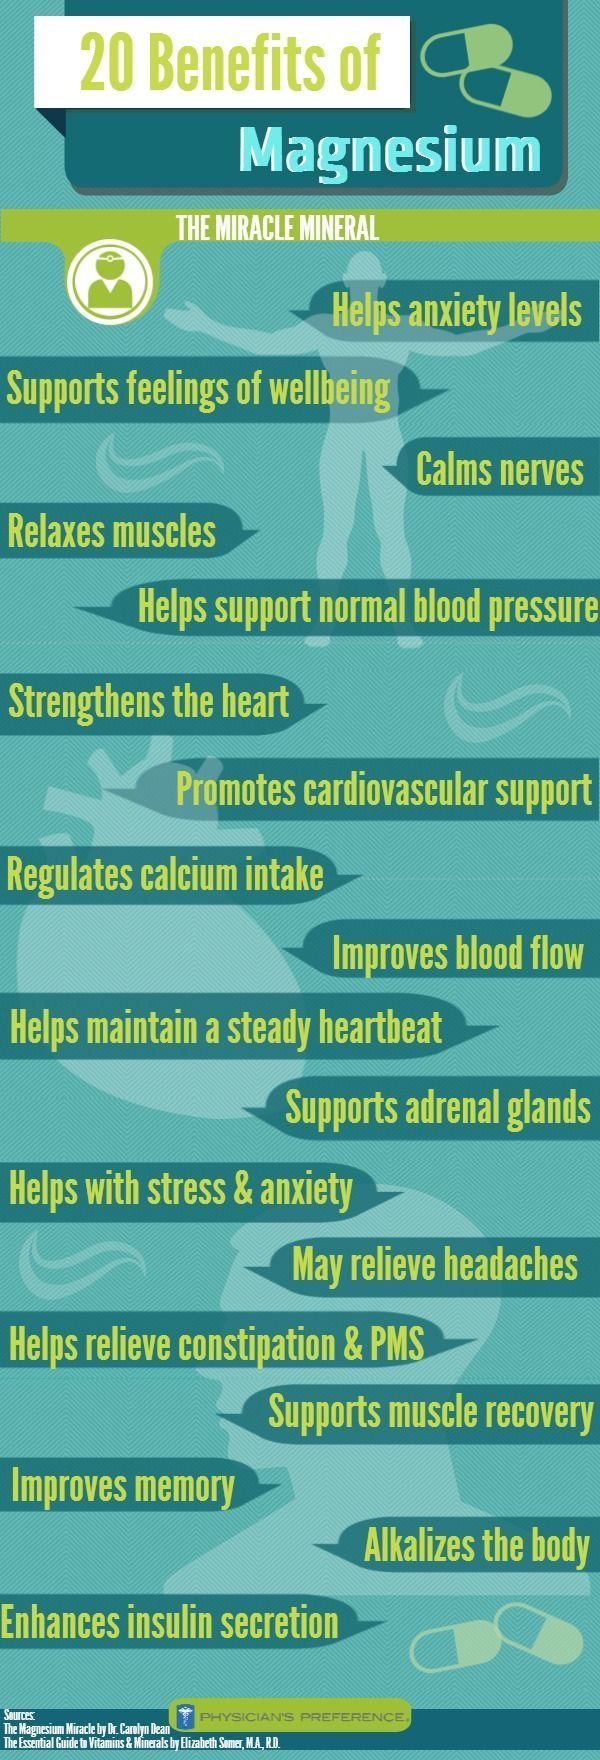 The benefits of magnesium. #nutrition #health